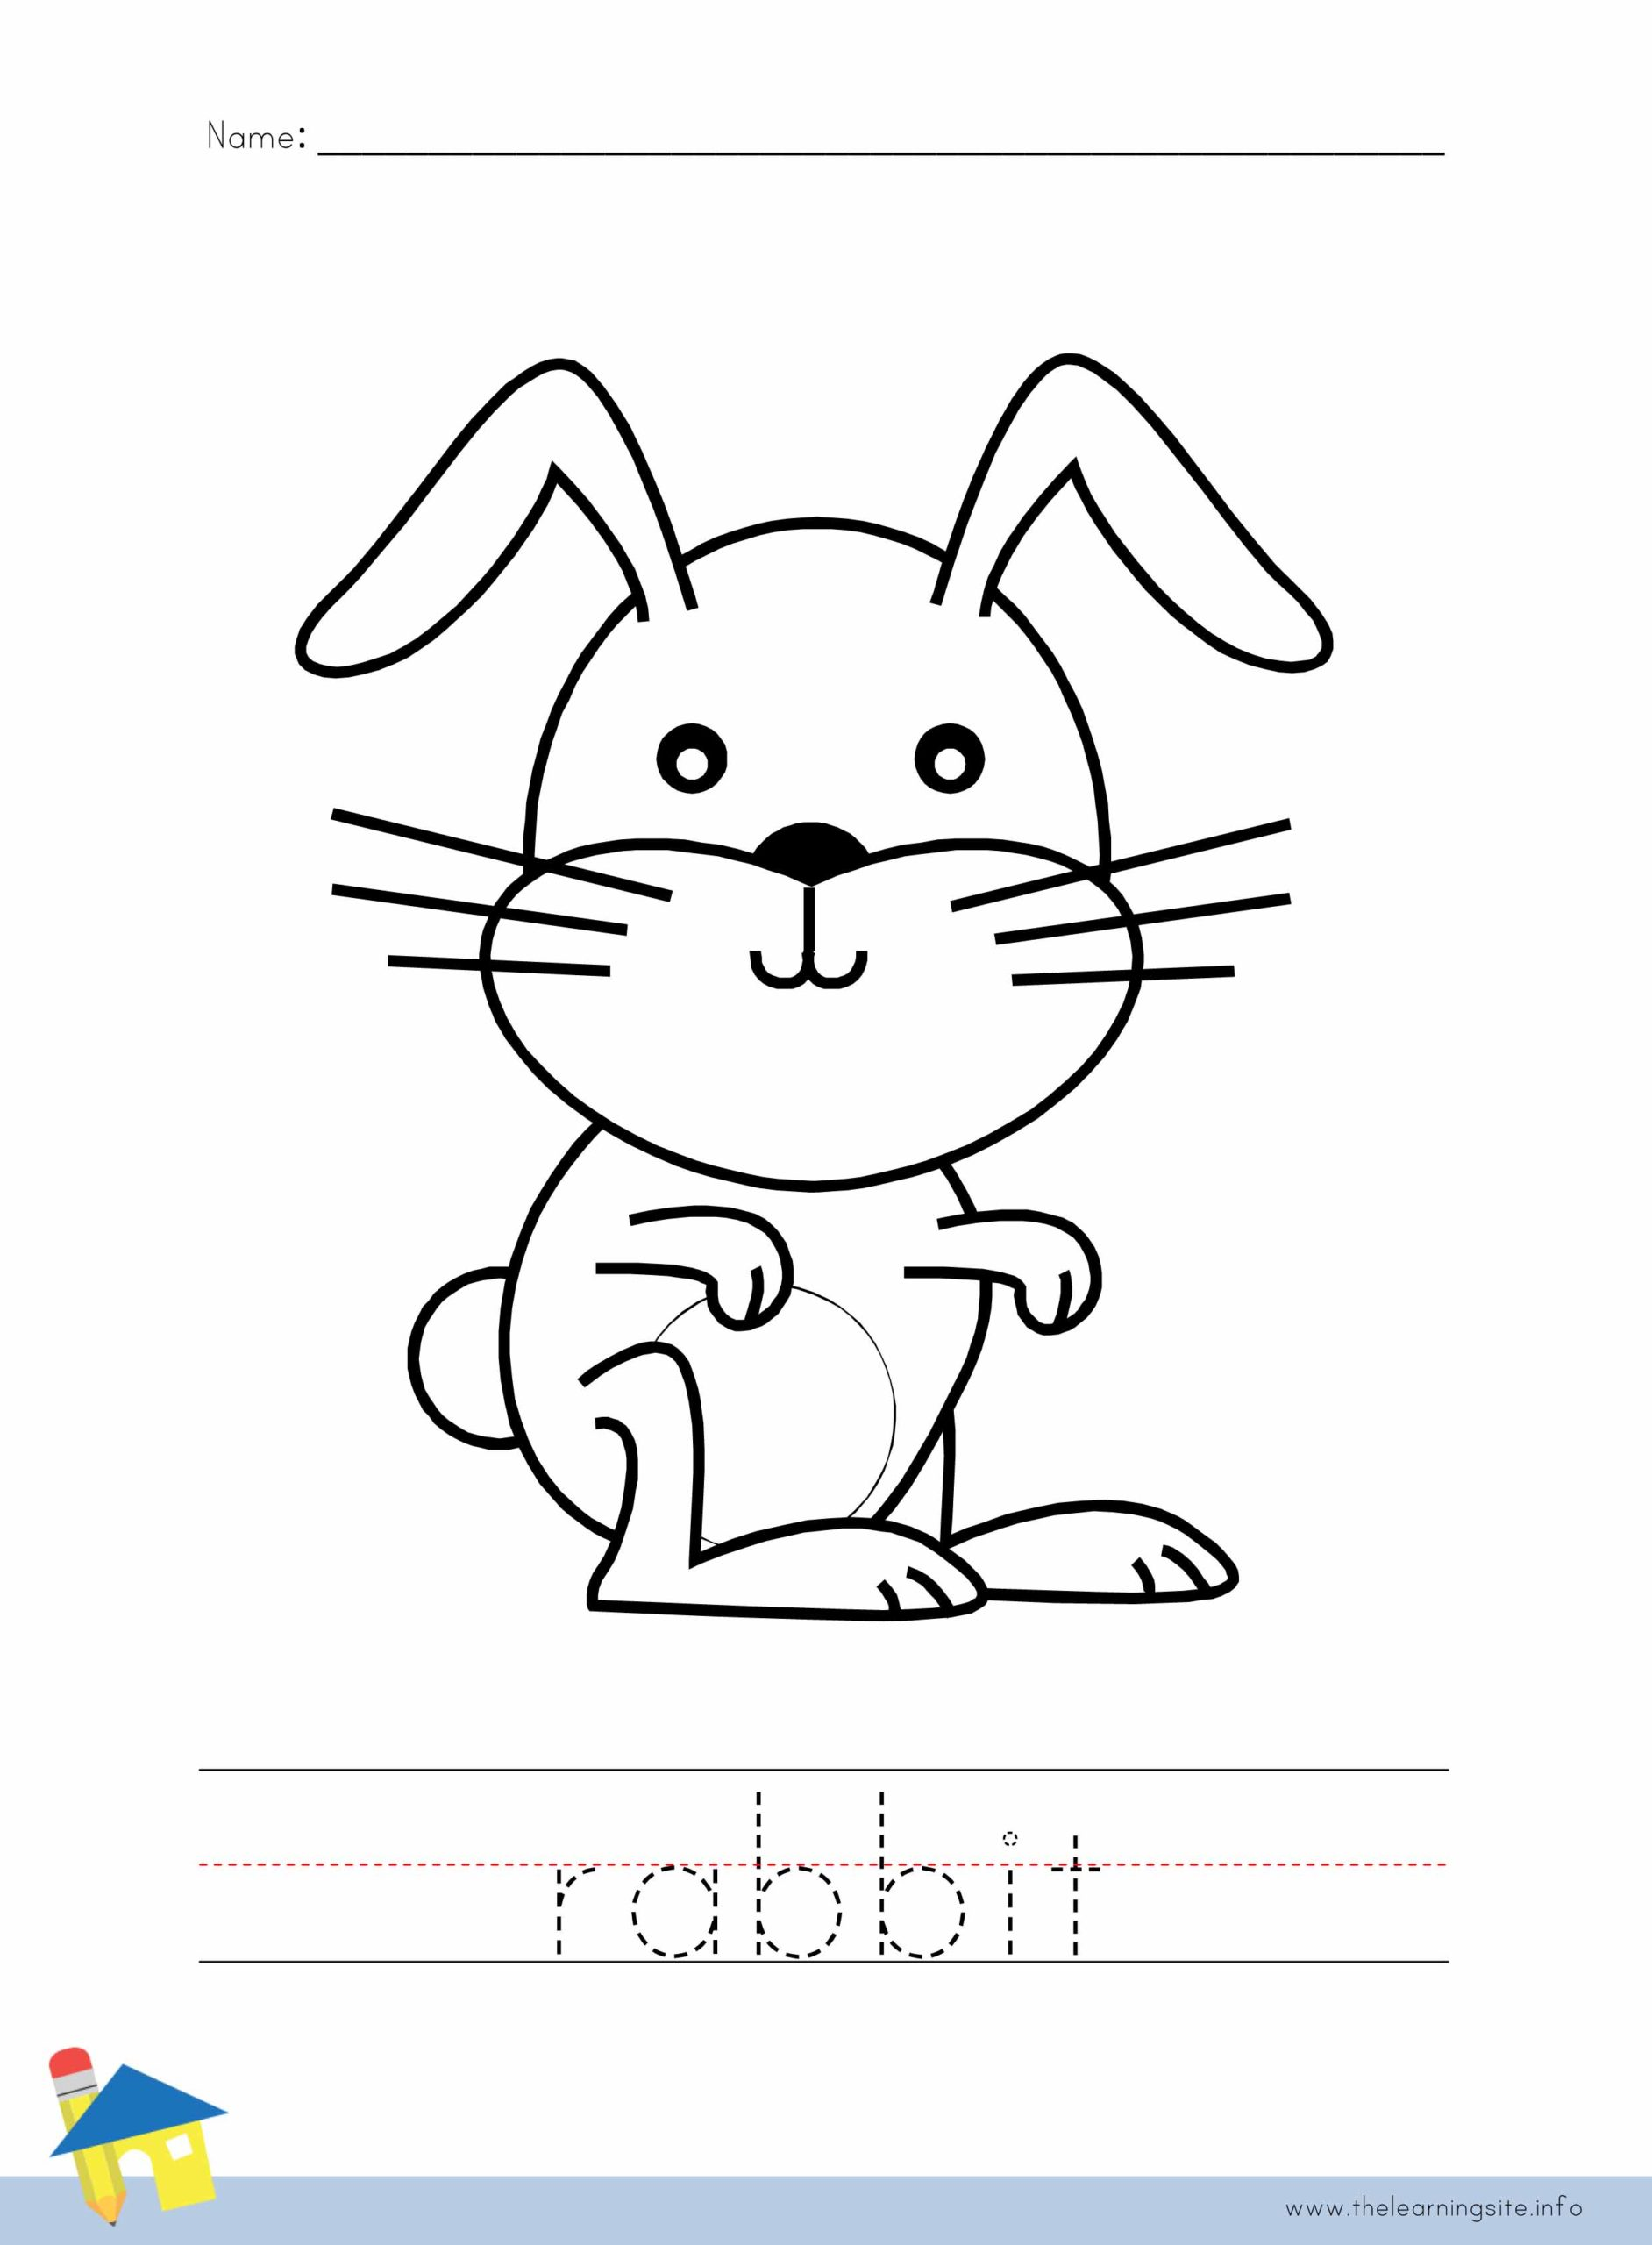 Rabbit Coloring Worksheet The Learning Site